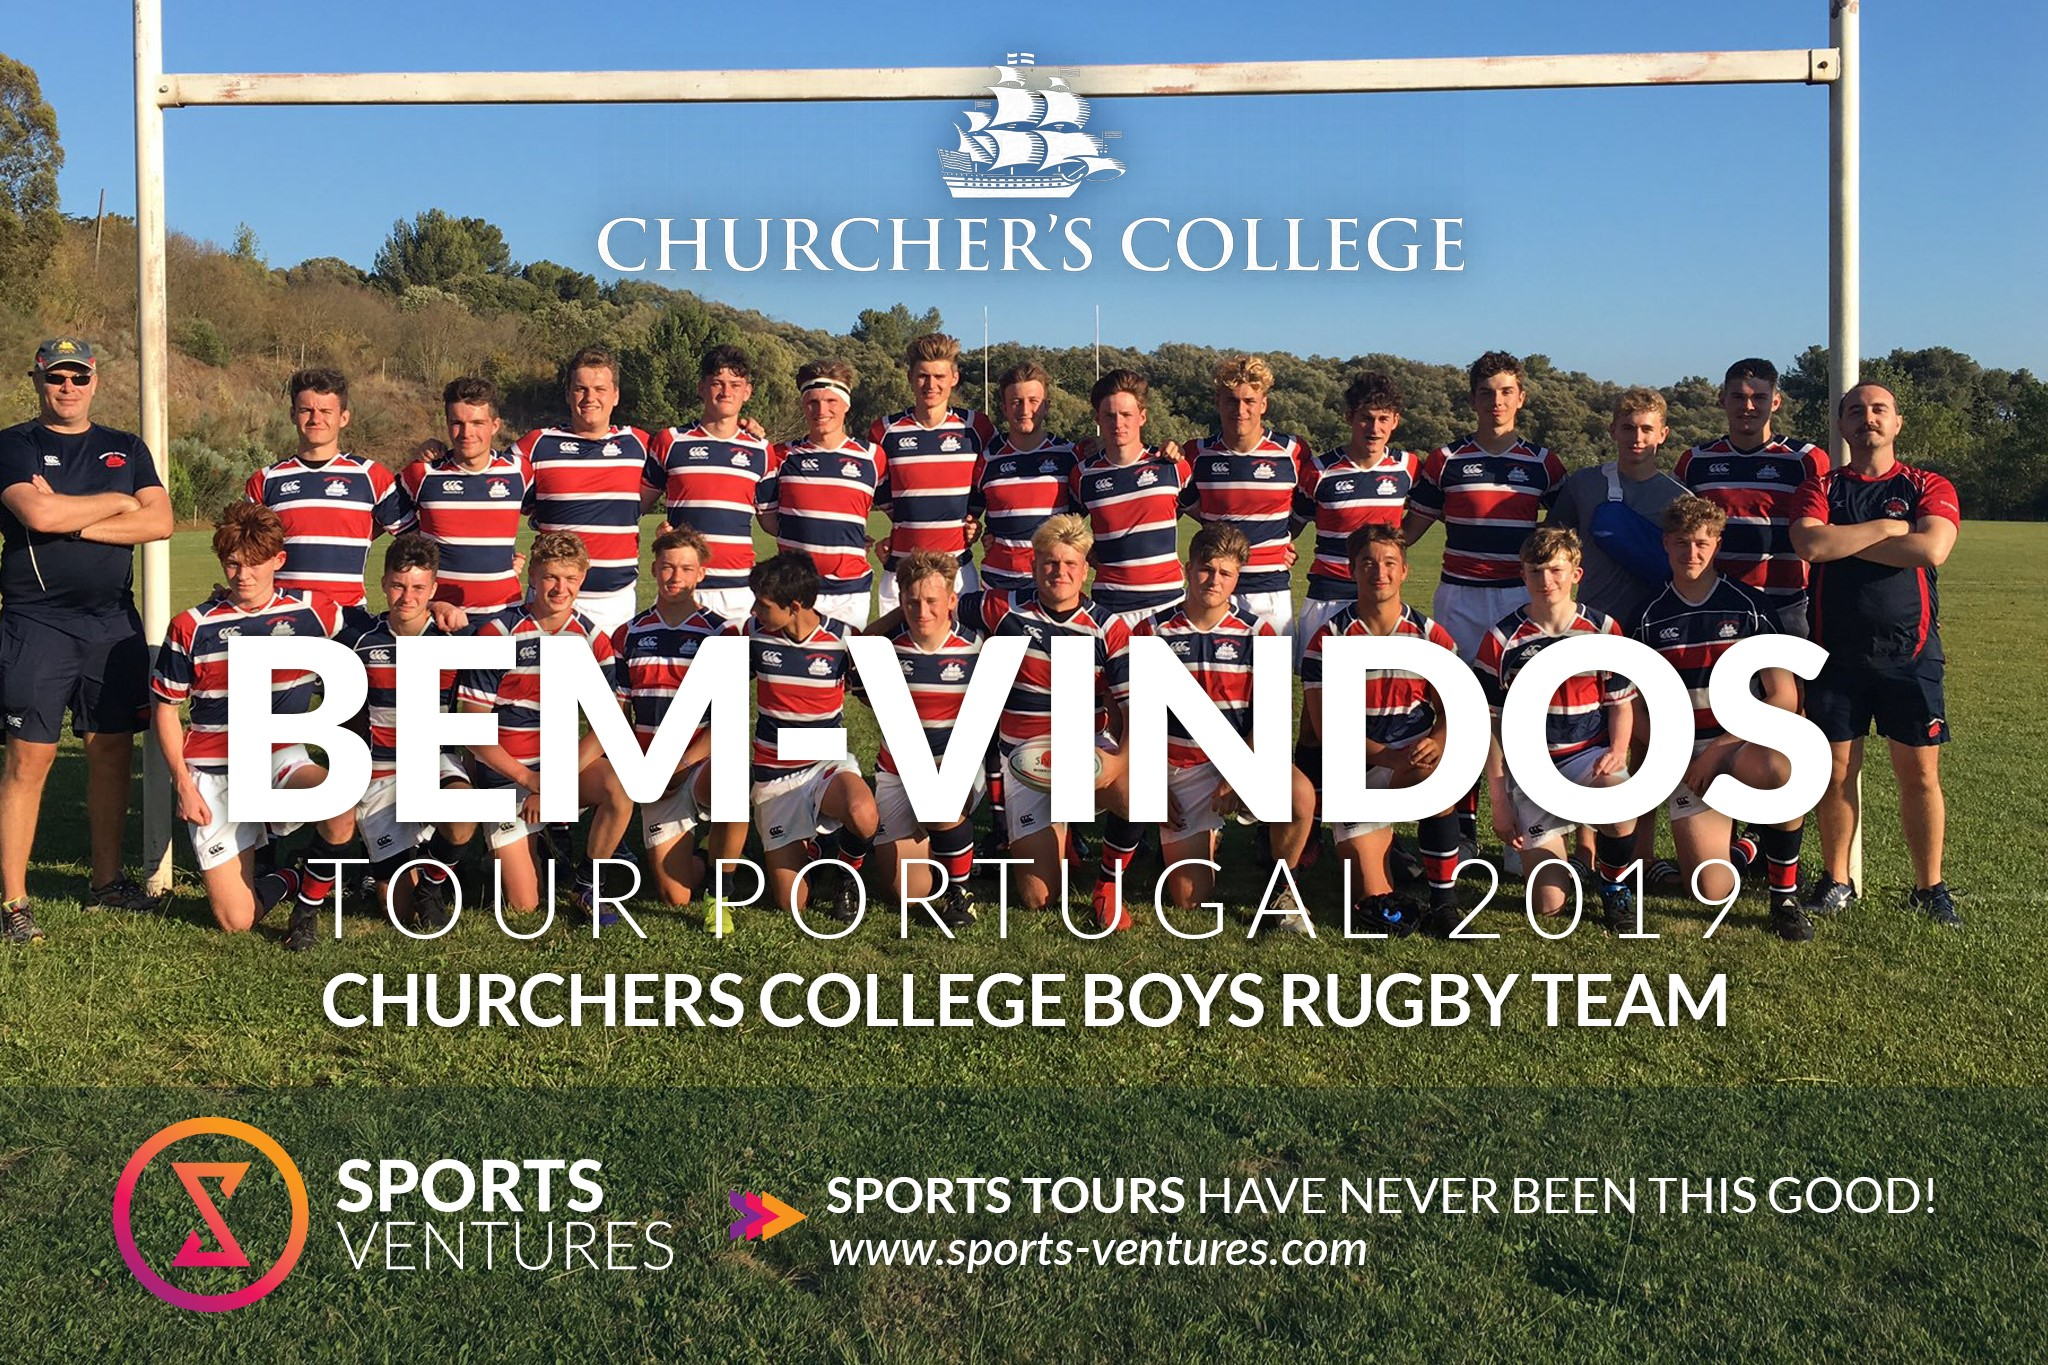 Churches-College-Rugby-Camp-Tour-Portugal